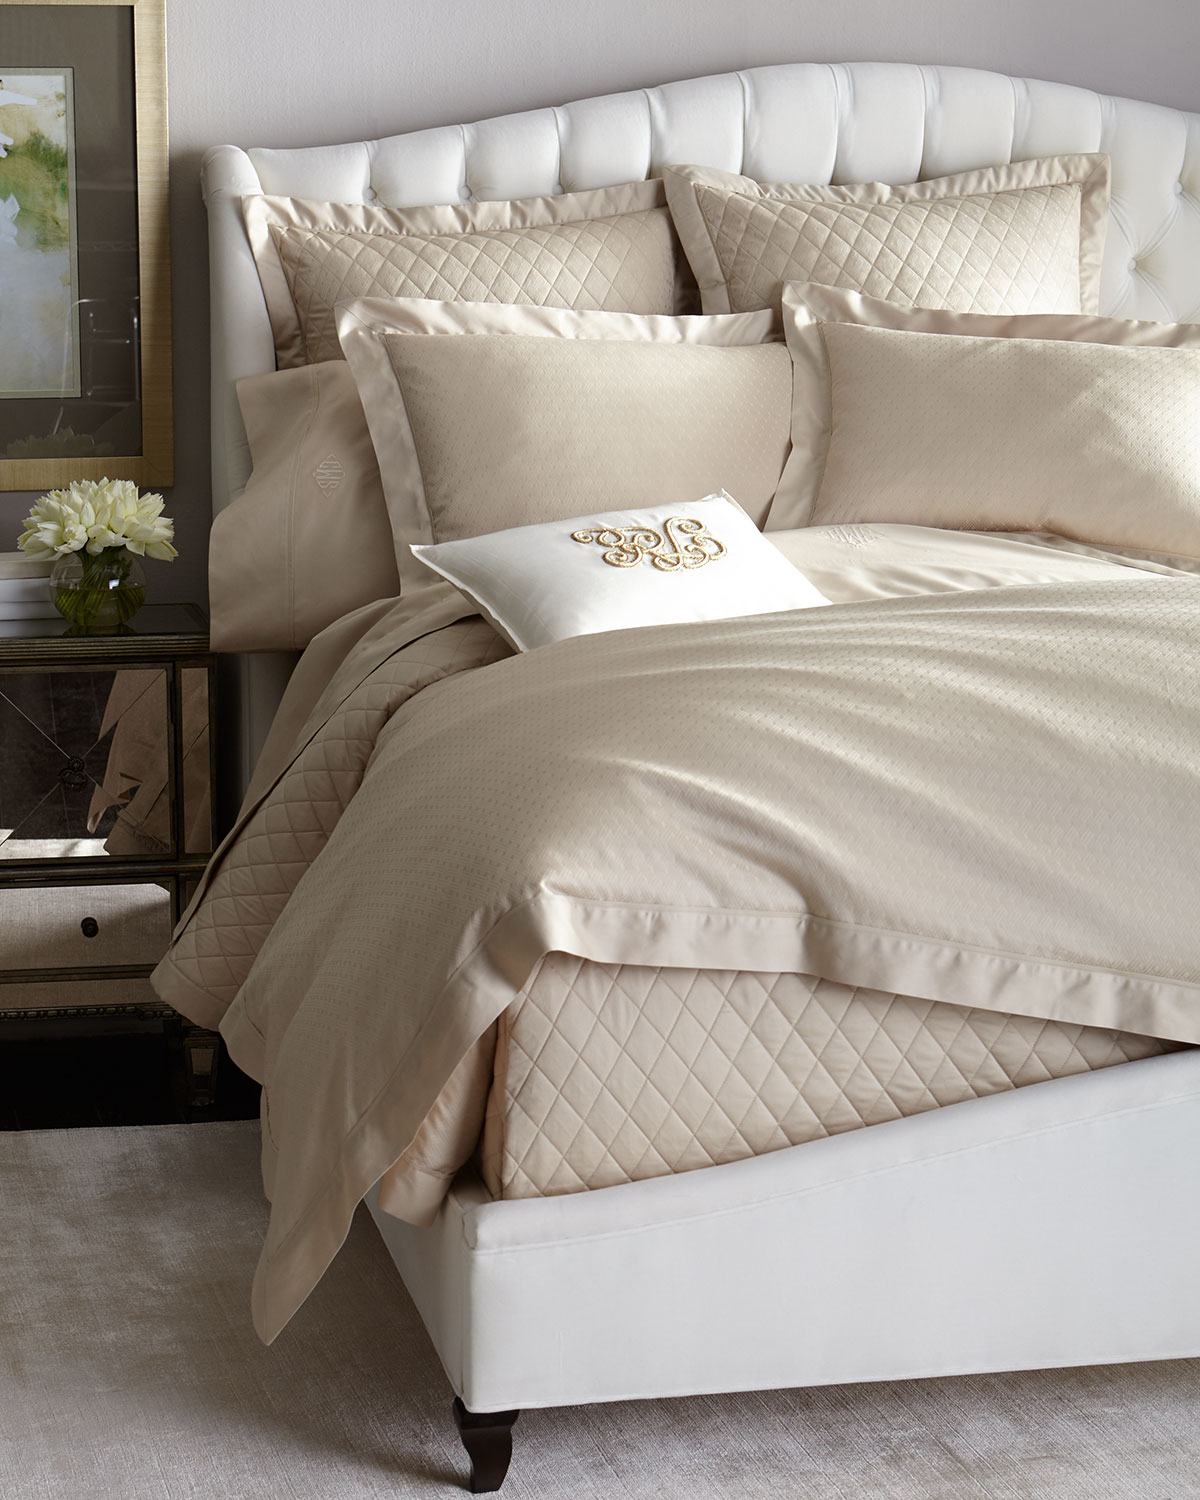 Two King 800 Thread Count Bedford Pillowcases